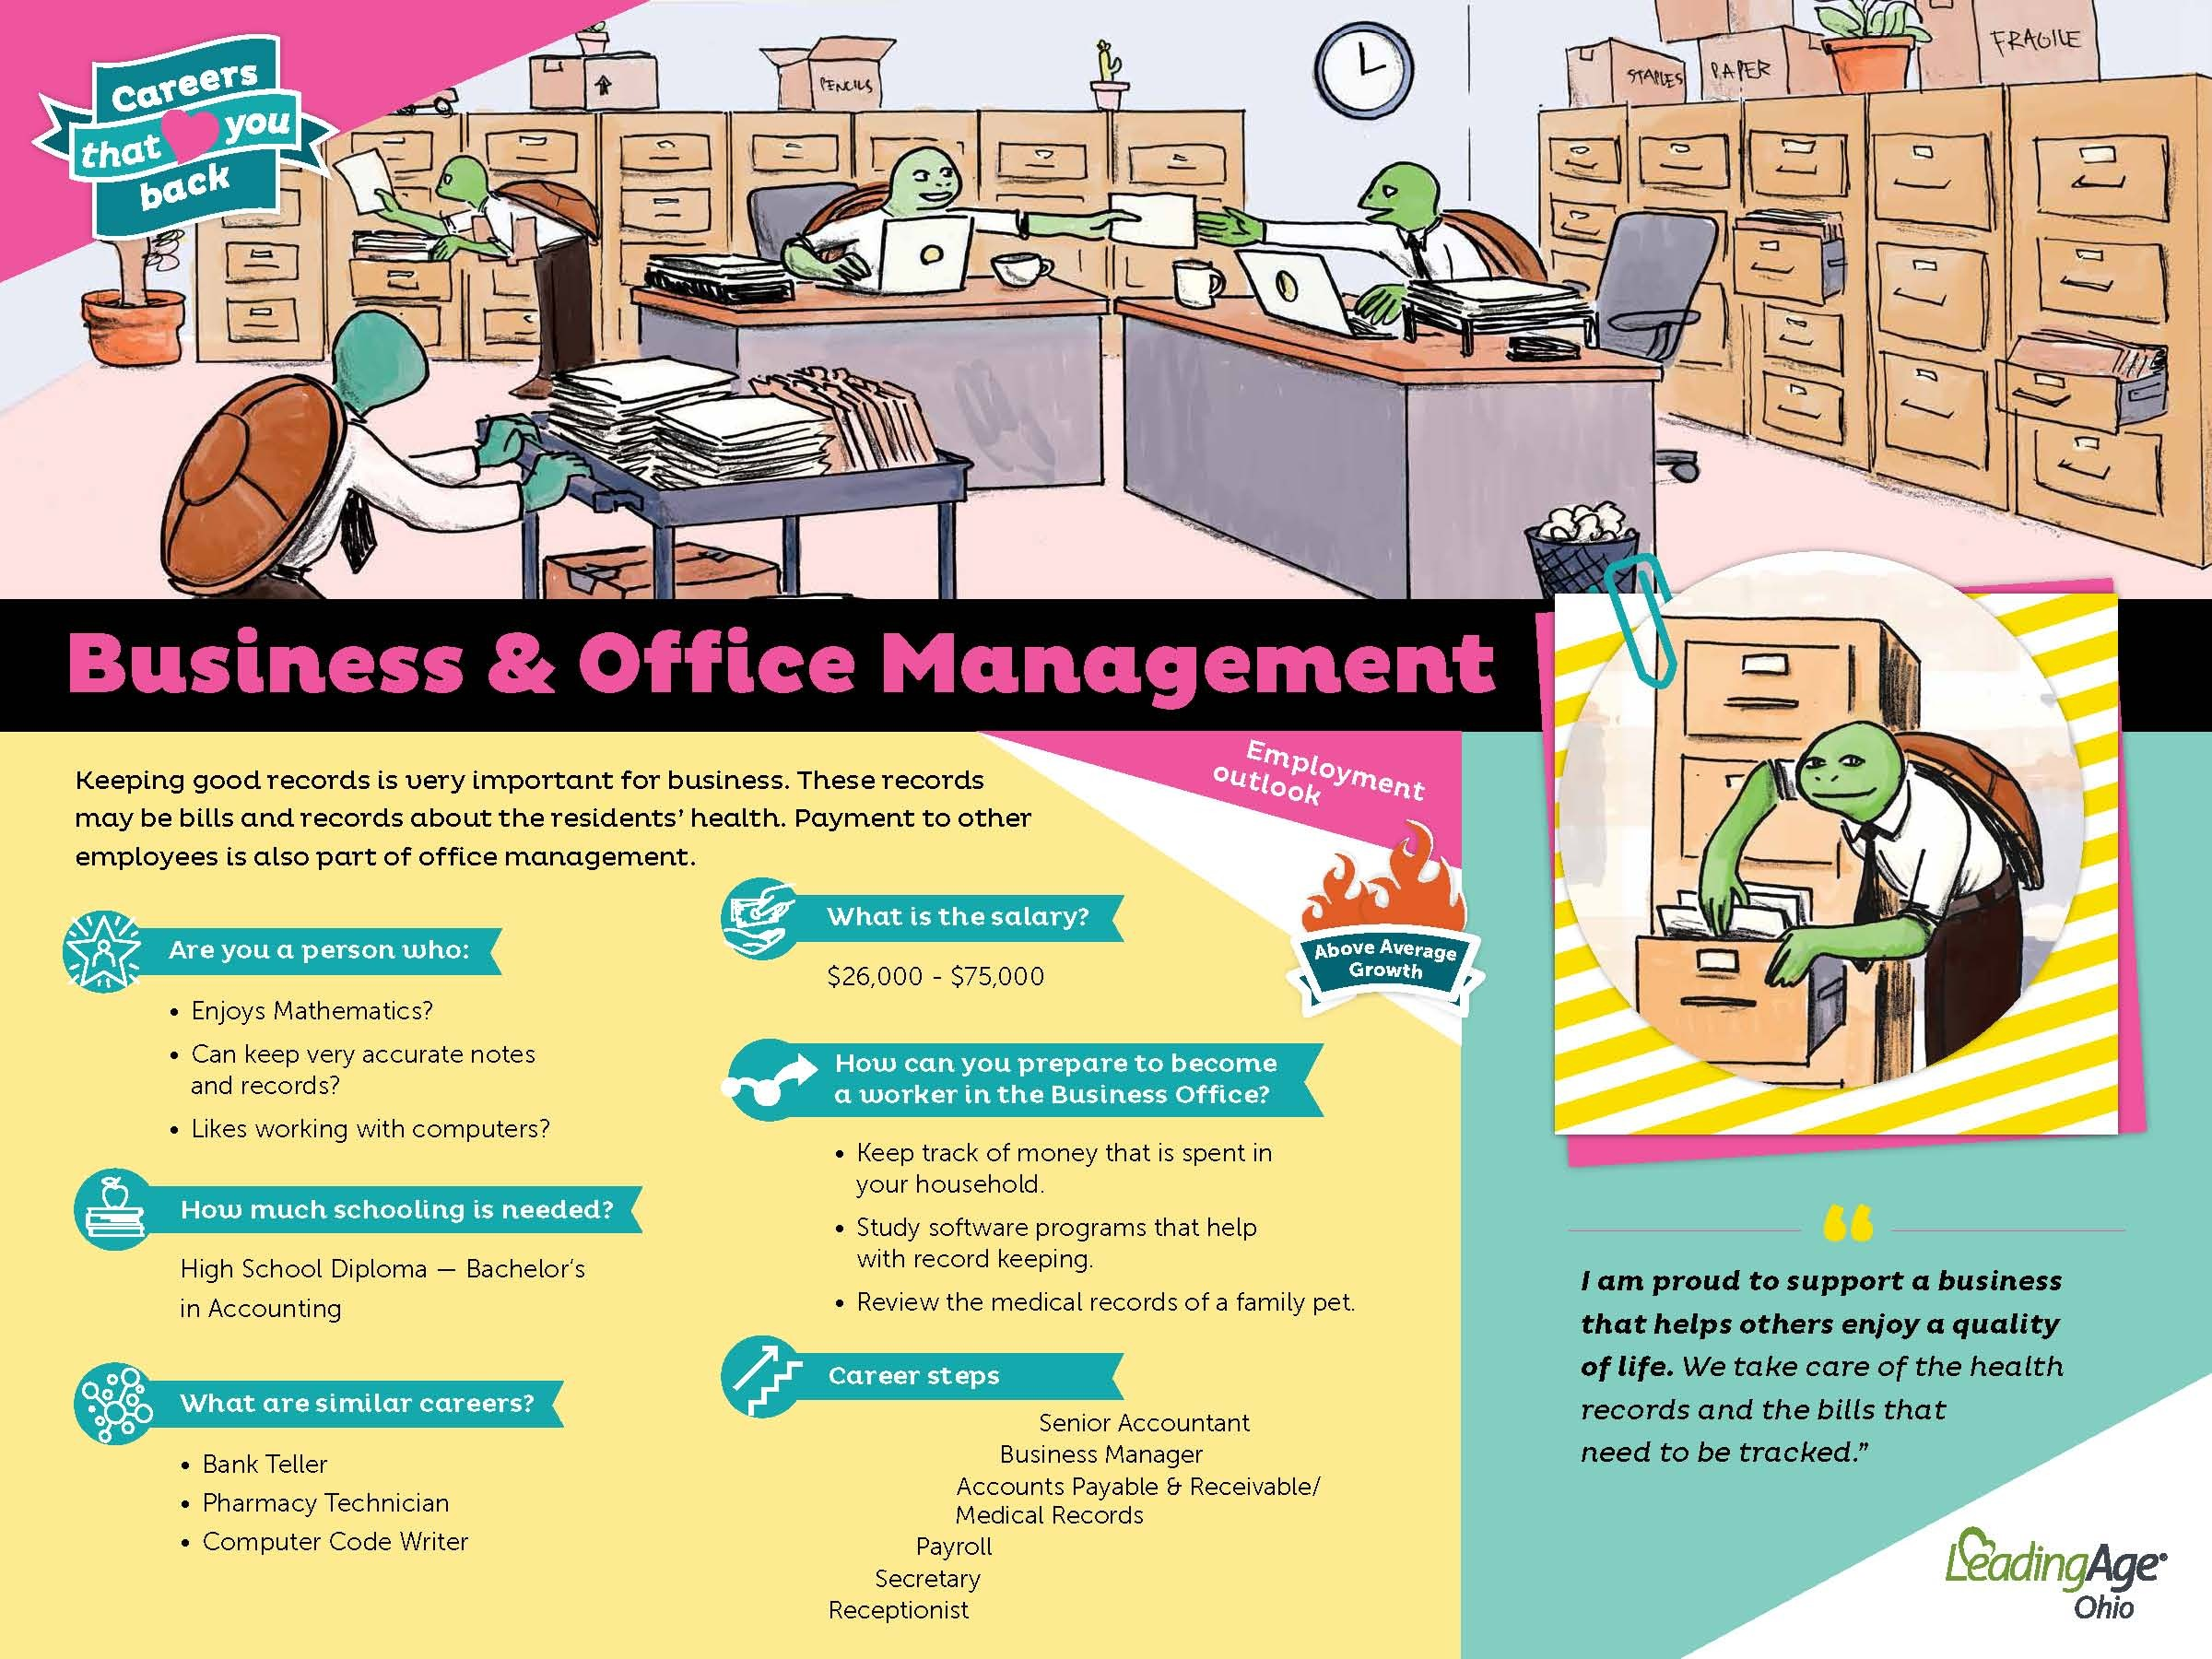 Business & Office Management